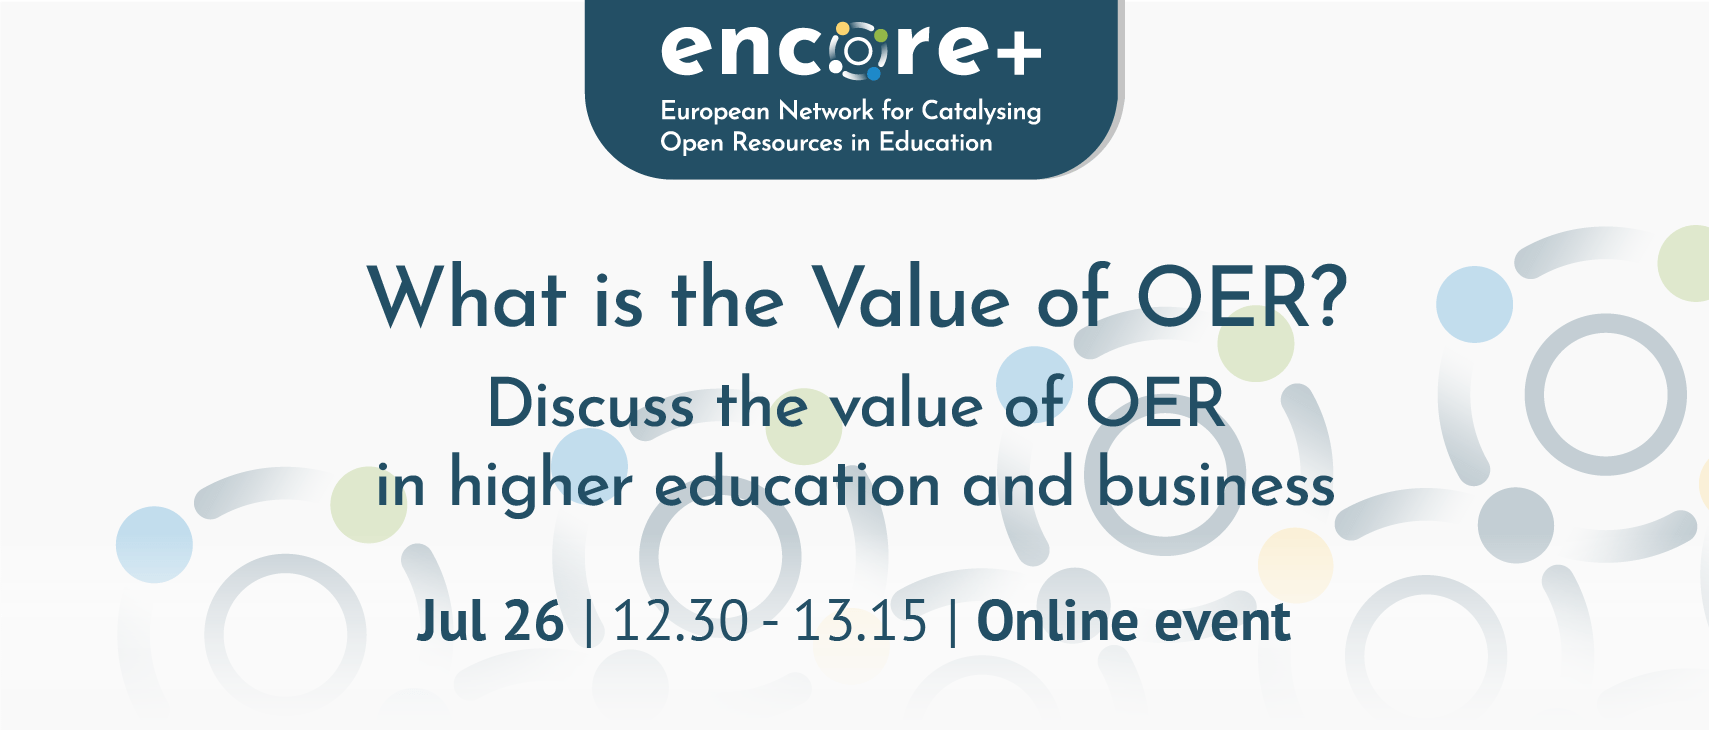 Join the Discussion: What is the Value of OER?